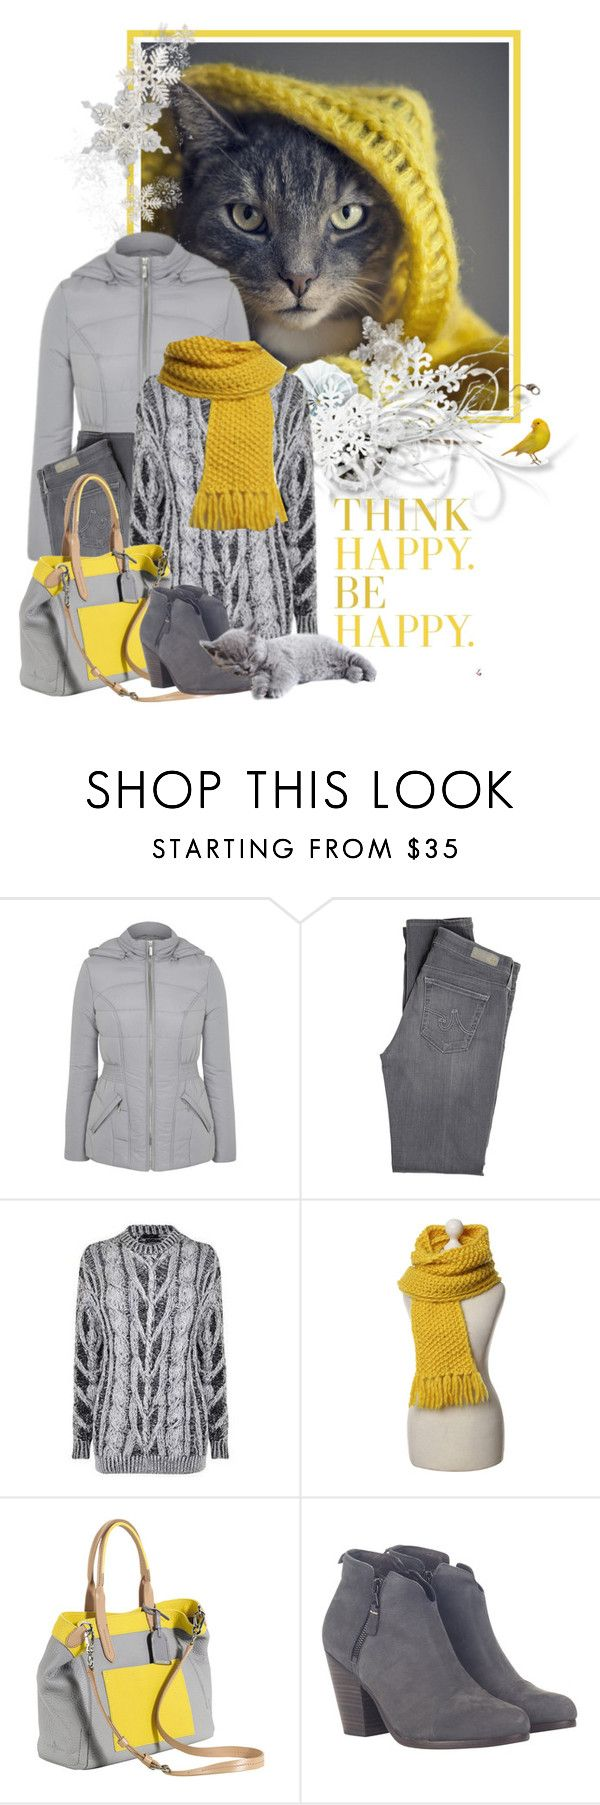 """""""grey & yellow"""" by sagramora ❤ liked on Polyvore featuring George, AG Adriano Goldschmied, Joseph, Lala Berlin, Cole Haan and rag & bone"""